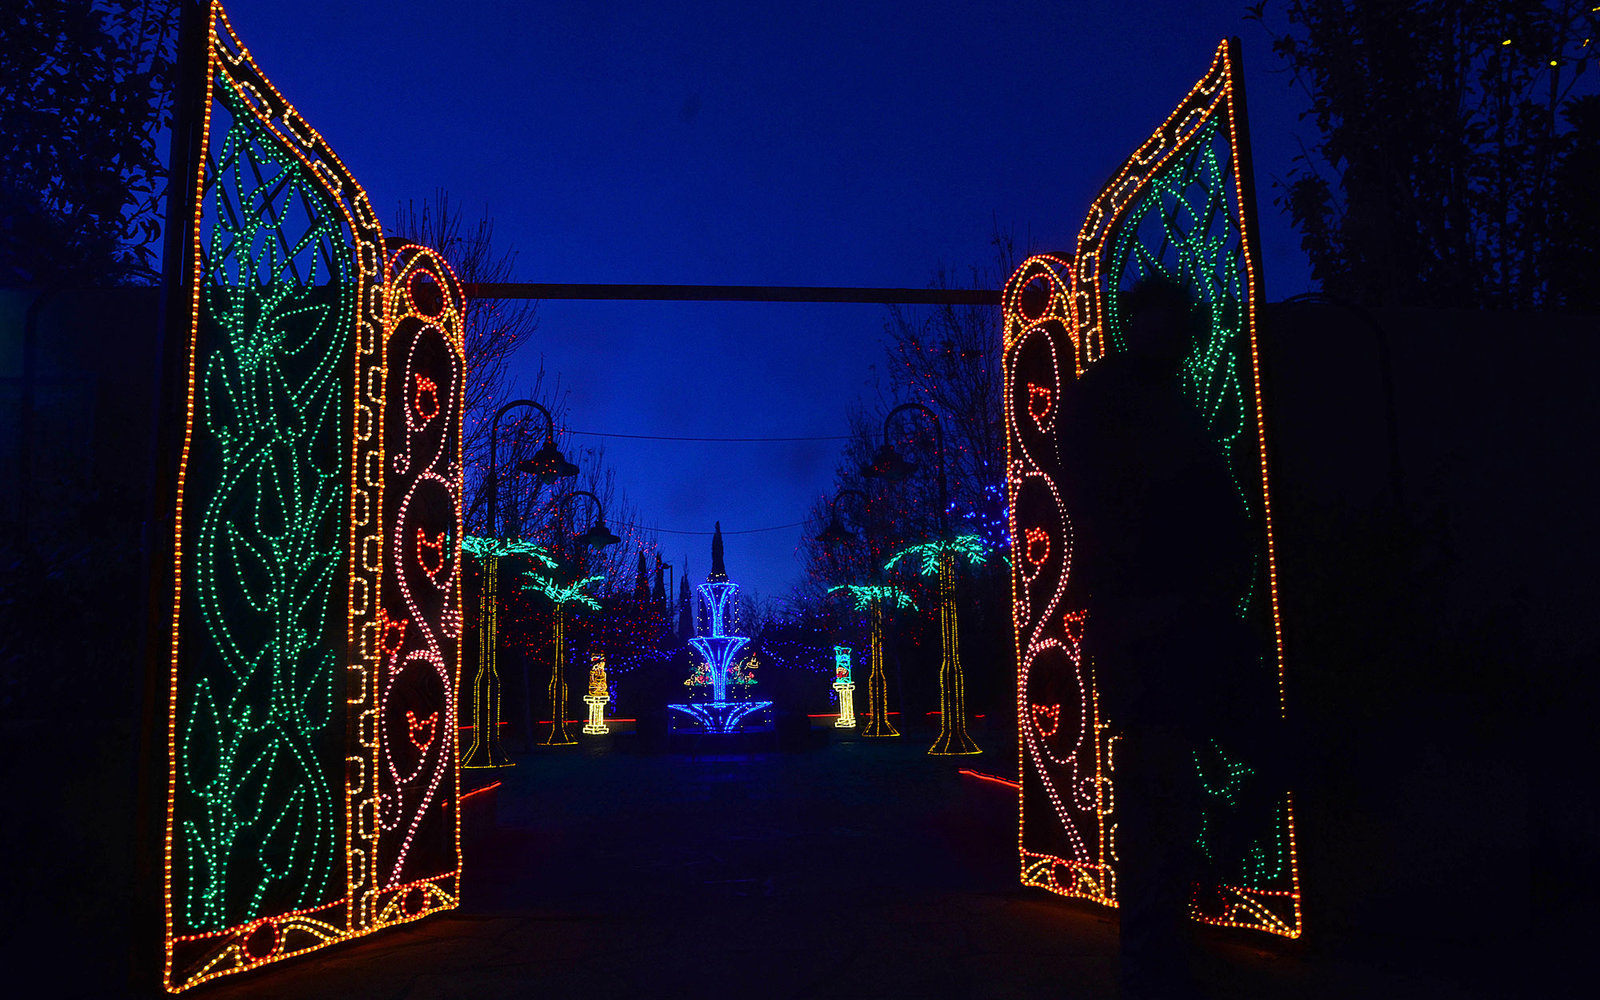 EAMCPP Albuquerque, NEW MEXICO, USA. 17th Nov, 2014. 111714.A man walks in front of the gates of the Moorish Garden that is part of this year's River of Lights at the Albuquerque Bio Park Botanical Garden .Photographed on Sunday November 16, 2014. /Adolph